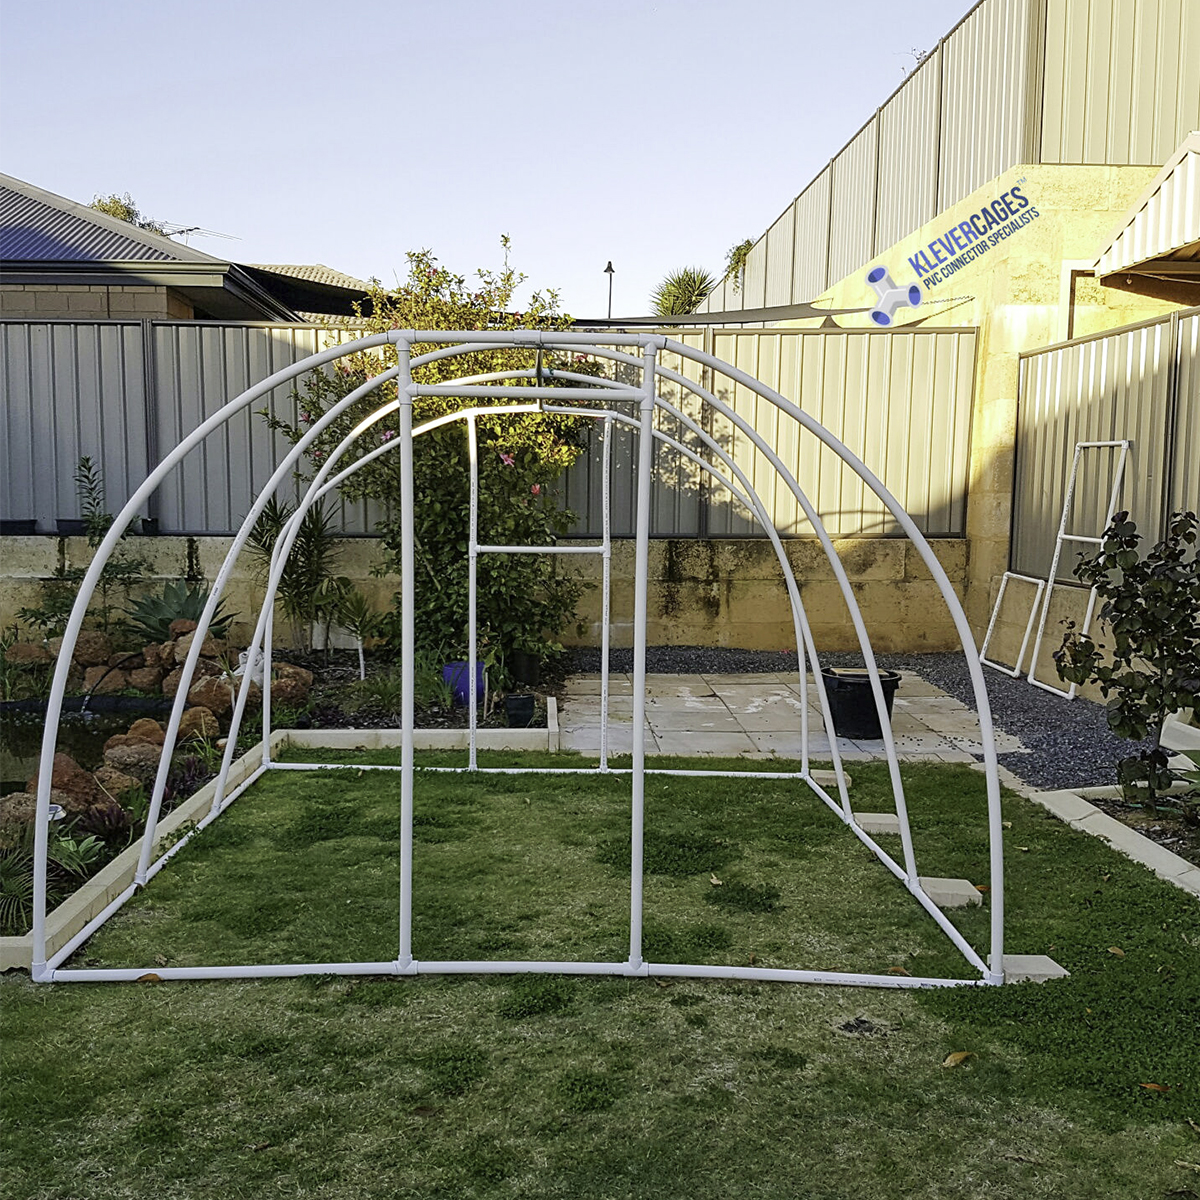 Walk in Greenhouse frame in the process of being built in the backyard. Frame is made from PVC connectors 25mm tees, hinges, 3ways and slip tees from Klever Cages Australia